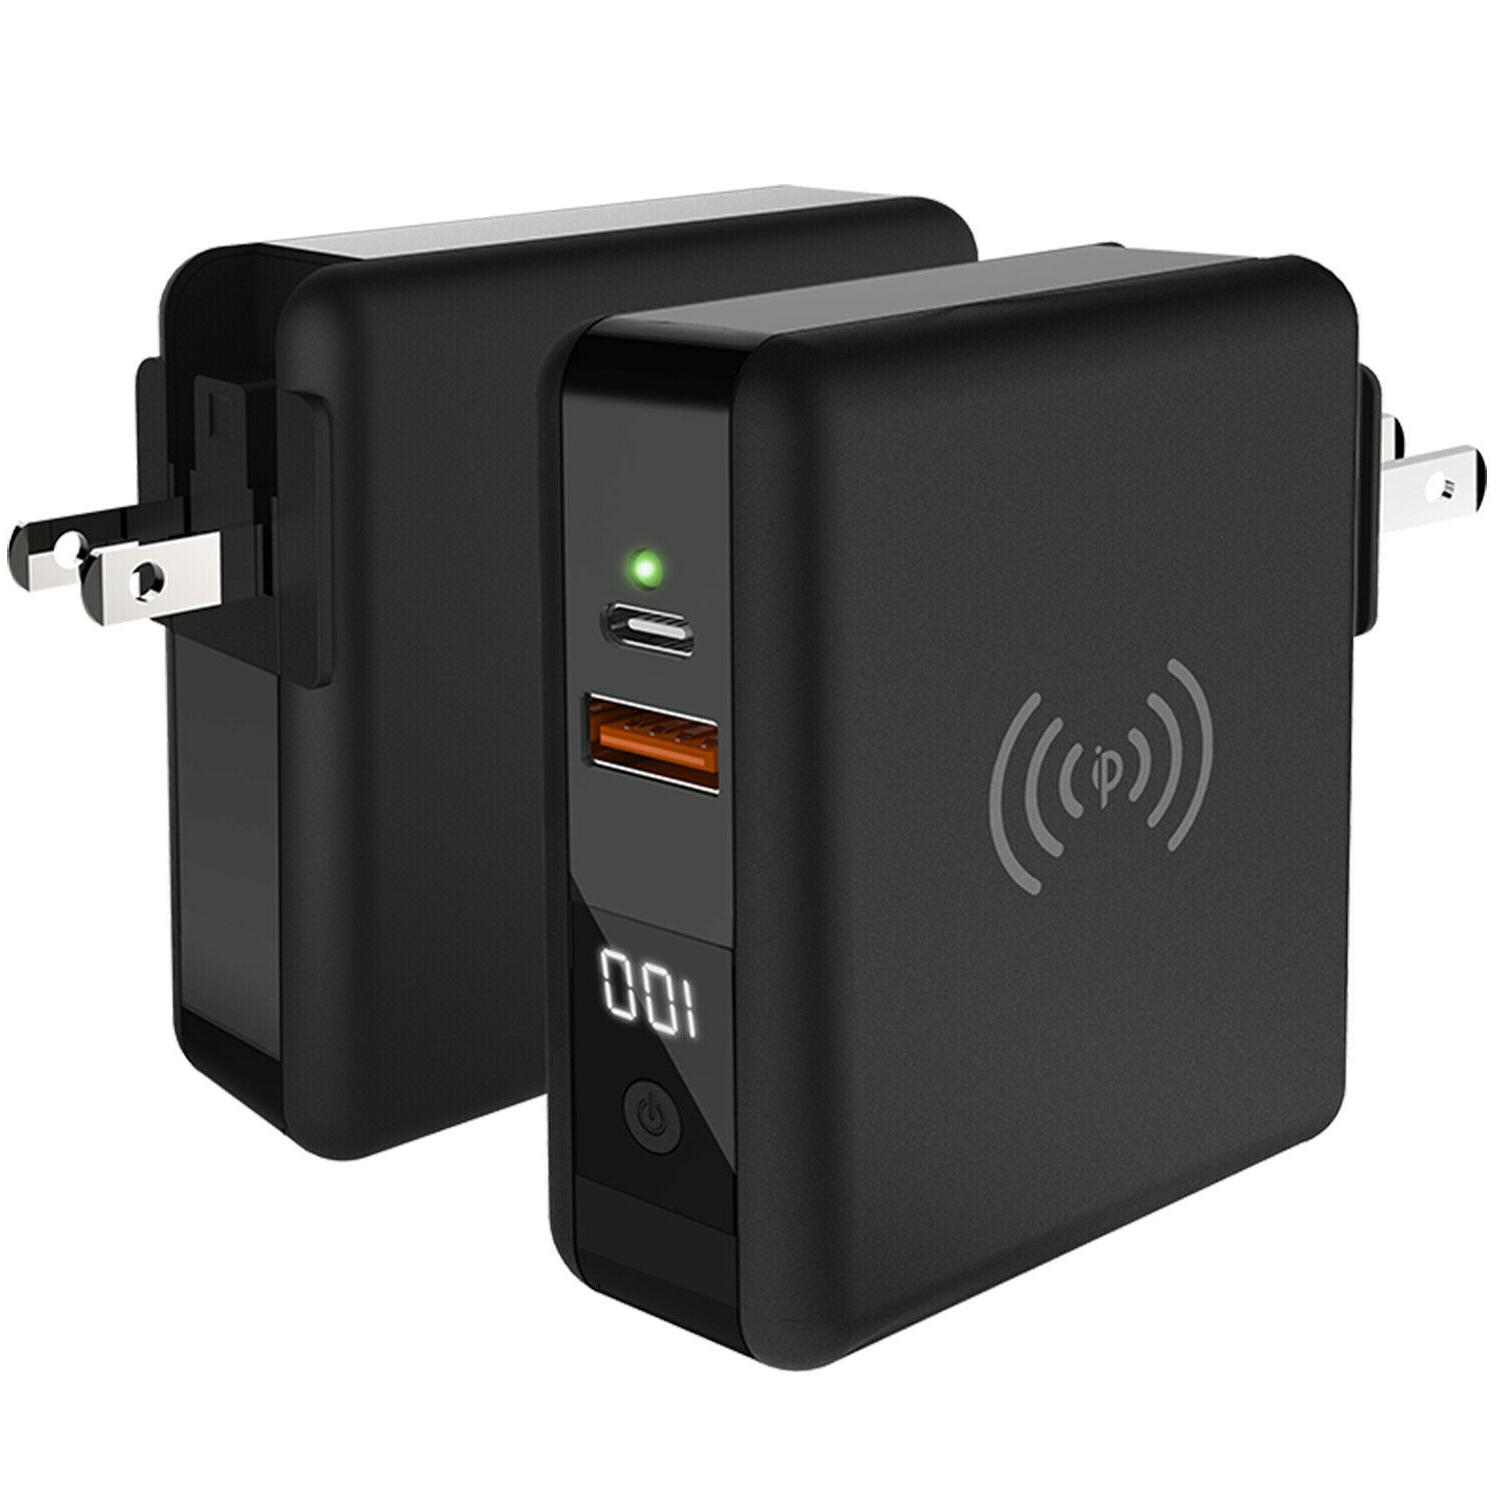 For / Charger Bank